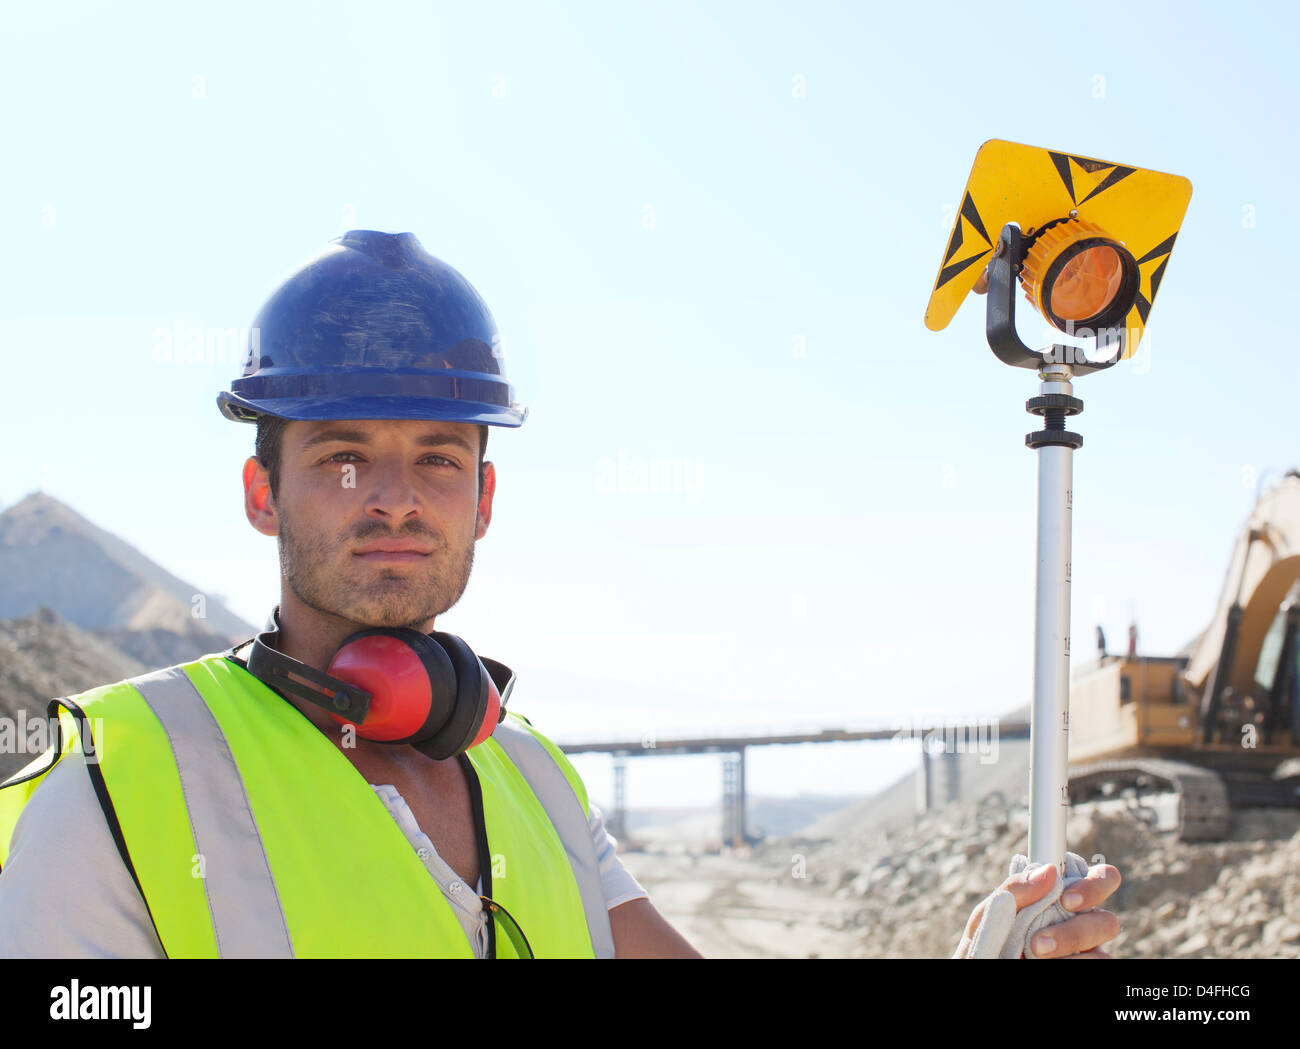 Worker standing in quarry Photo Stock